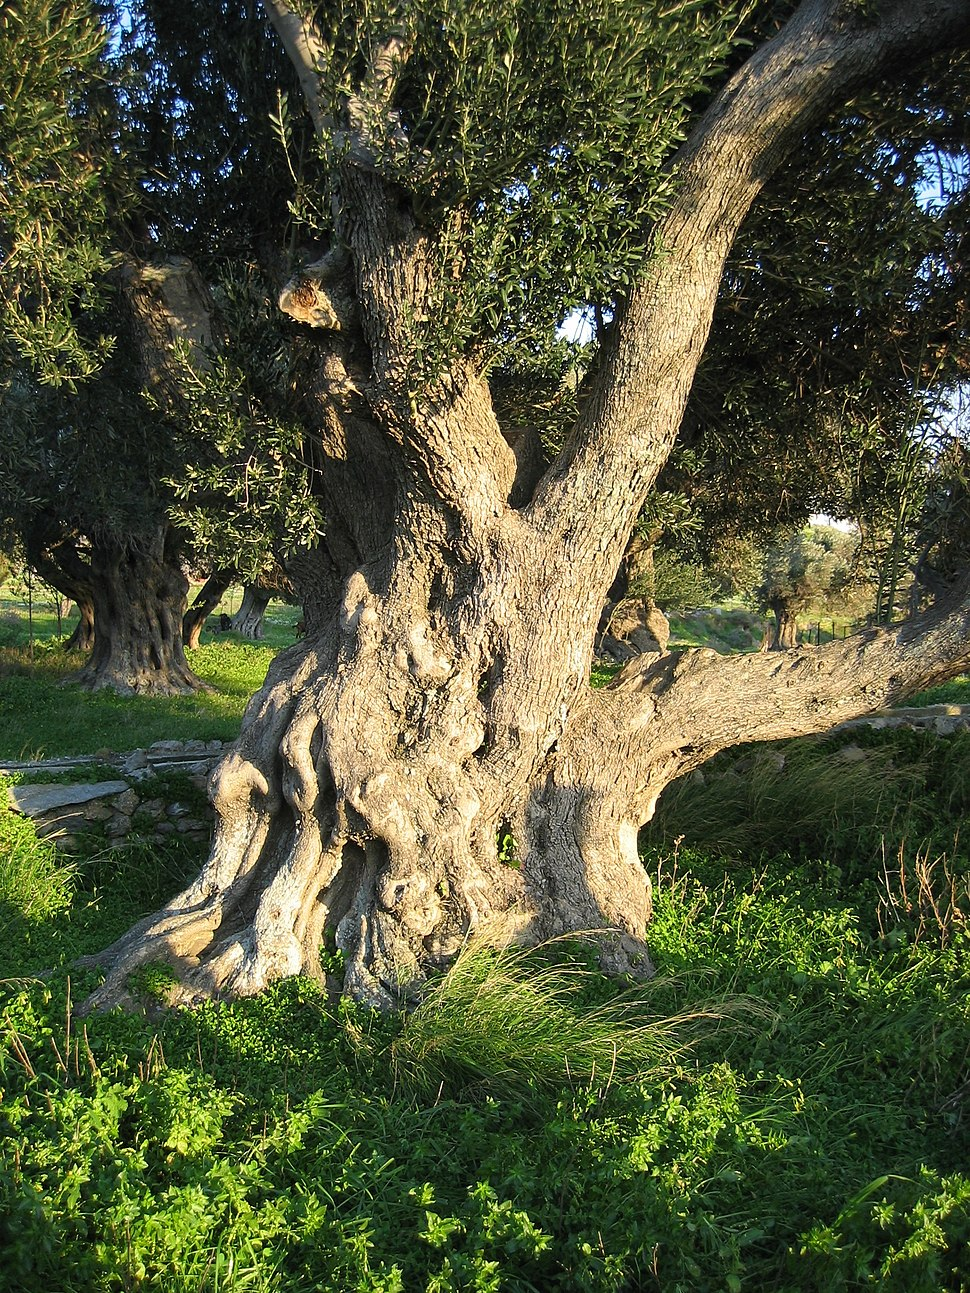 Old olive tree in Karystos, Euboia, Greece